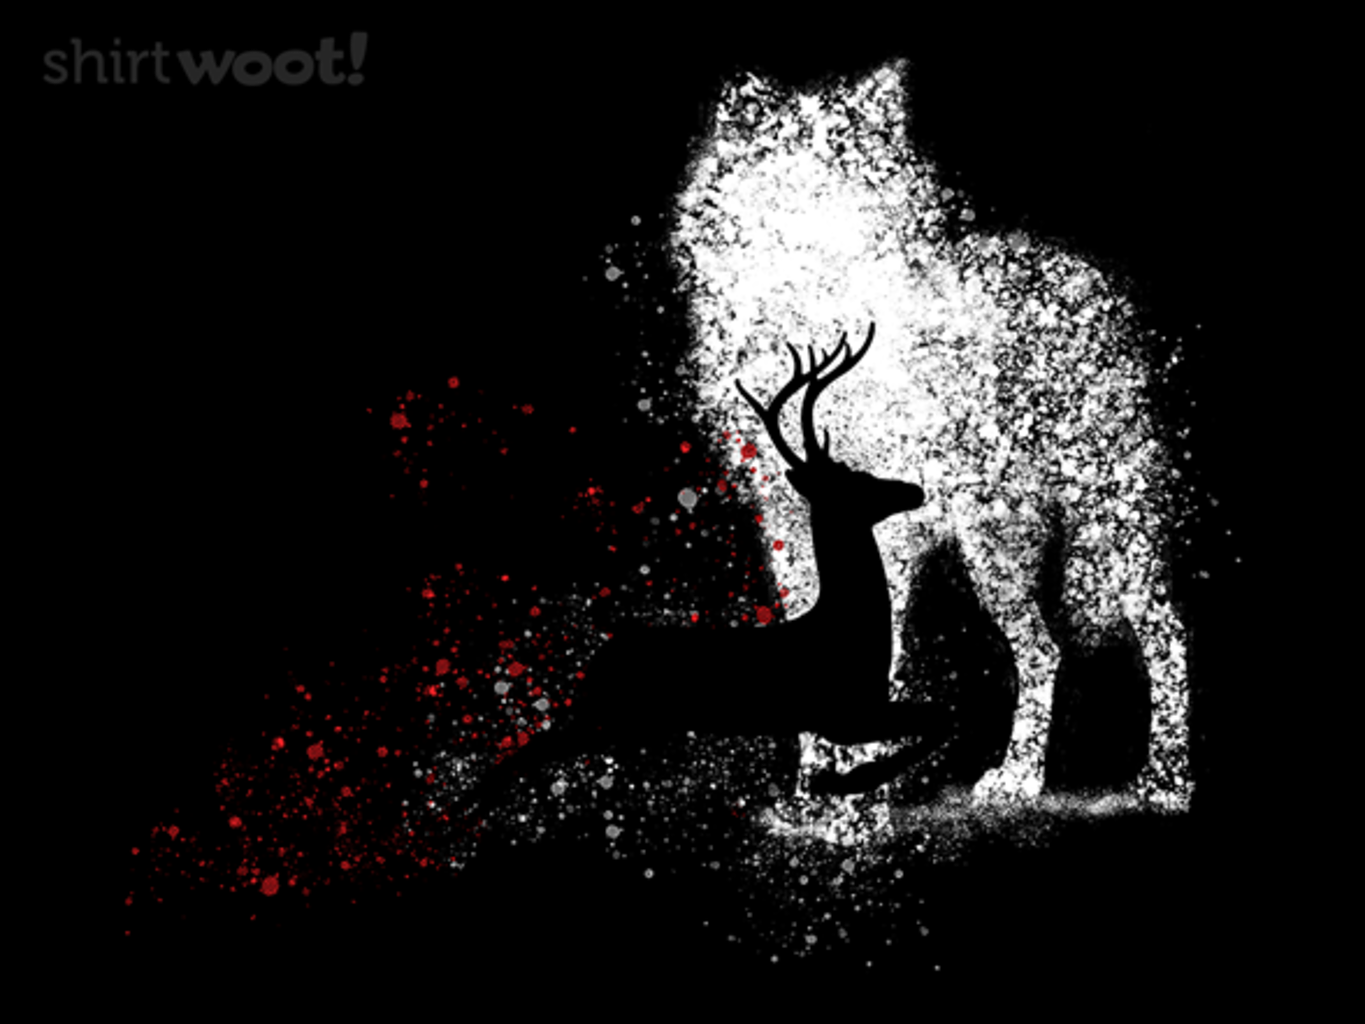 Woot!: Wolf and Deer